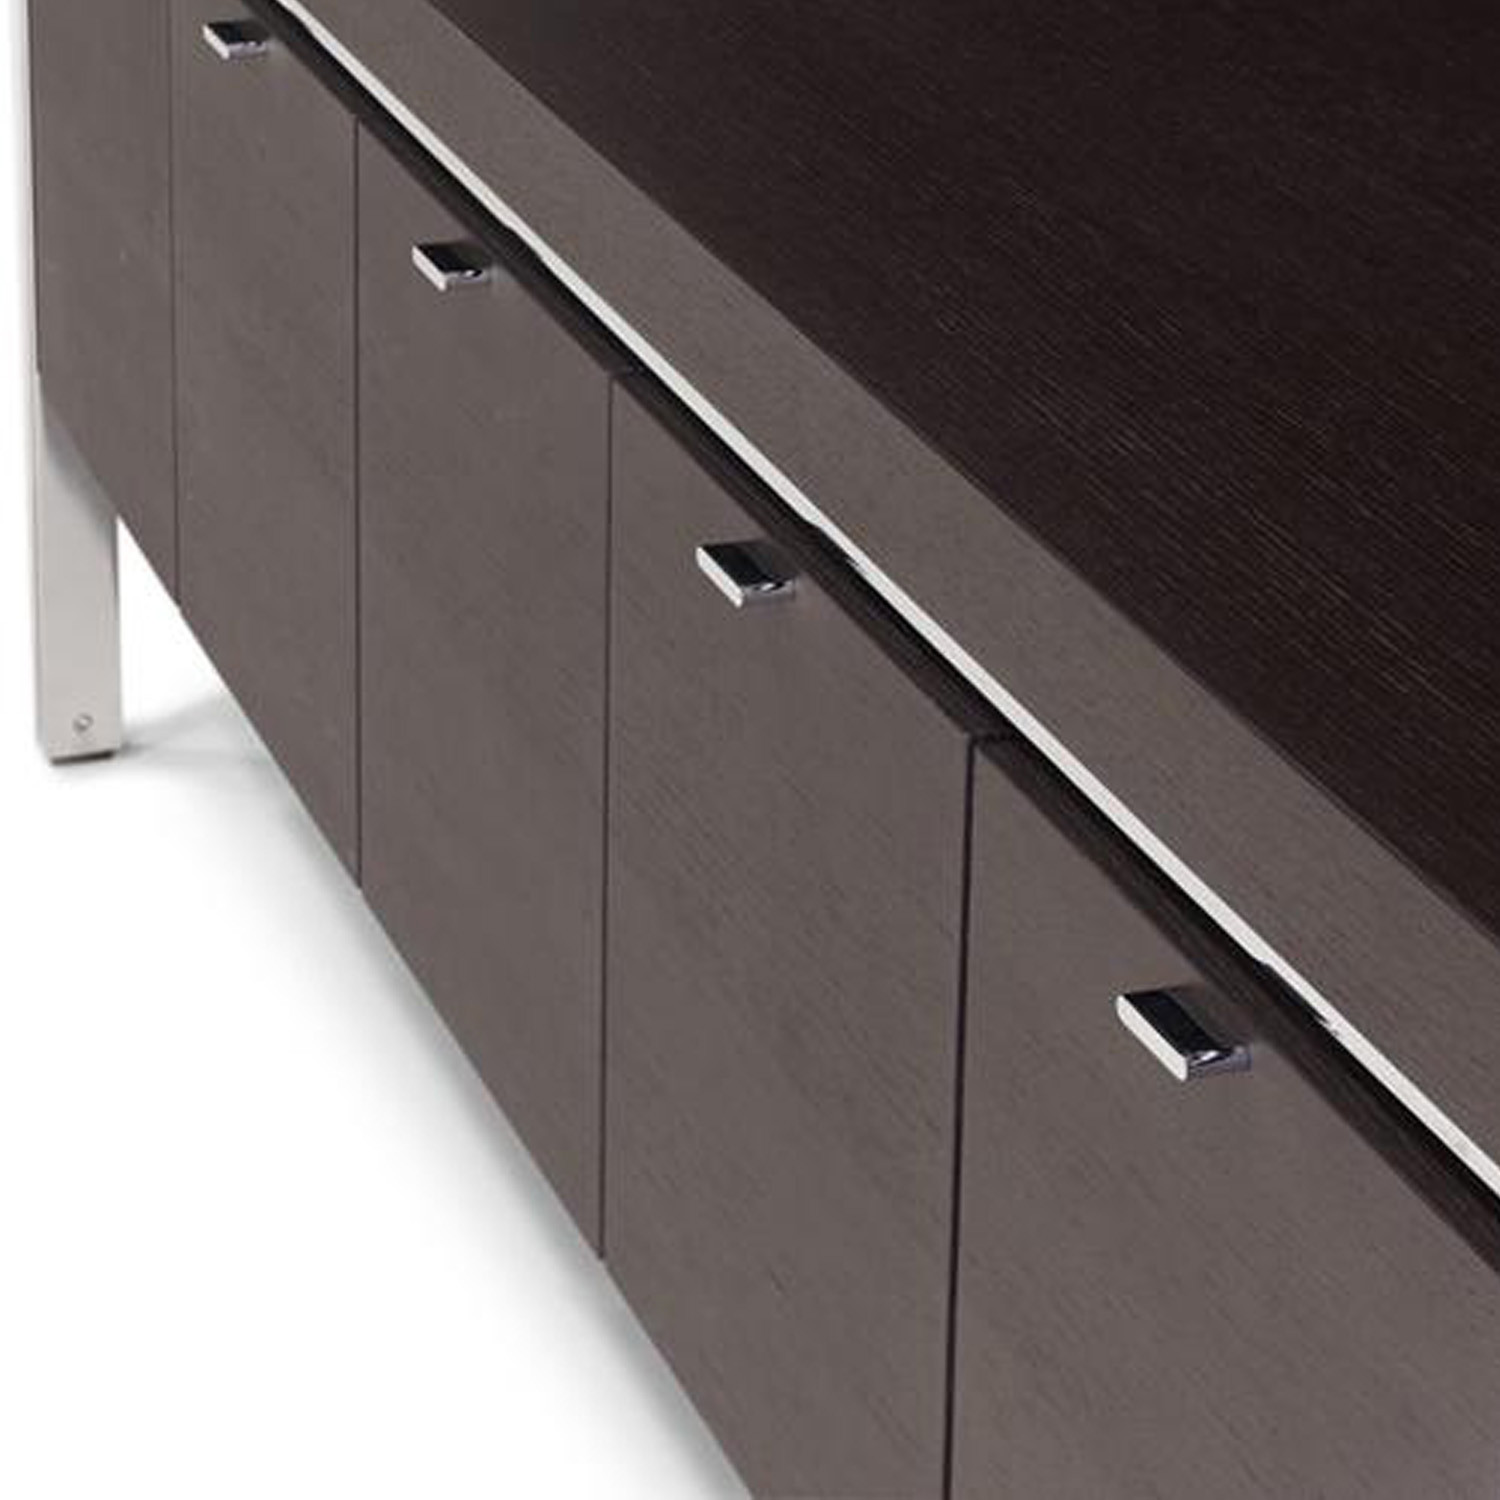 Parallel Executive Desk Storage System